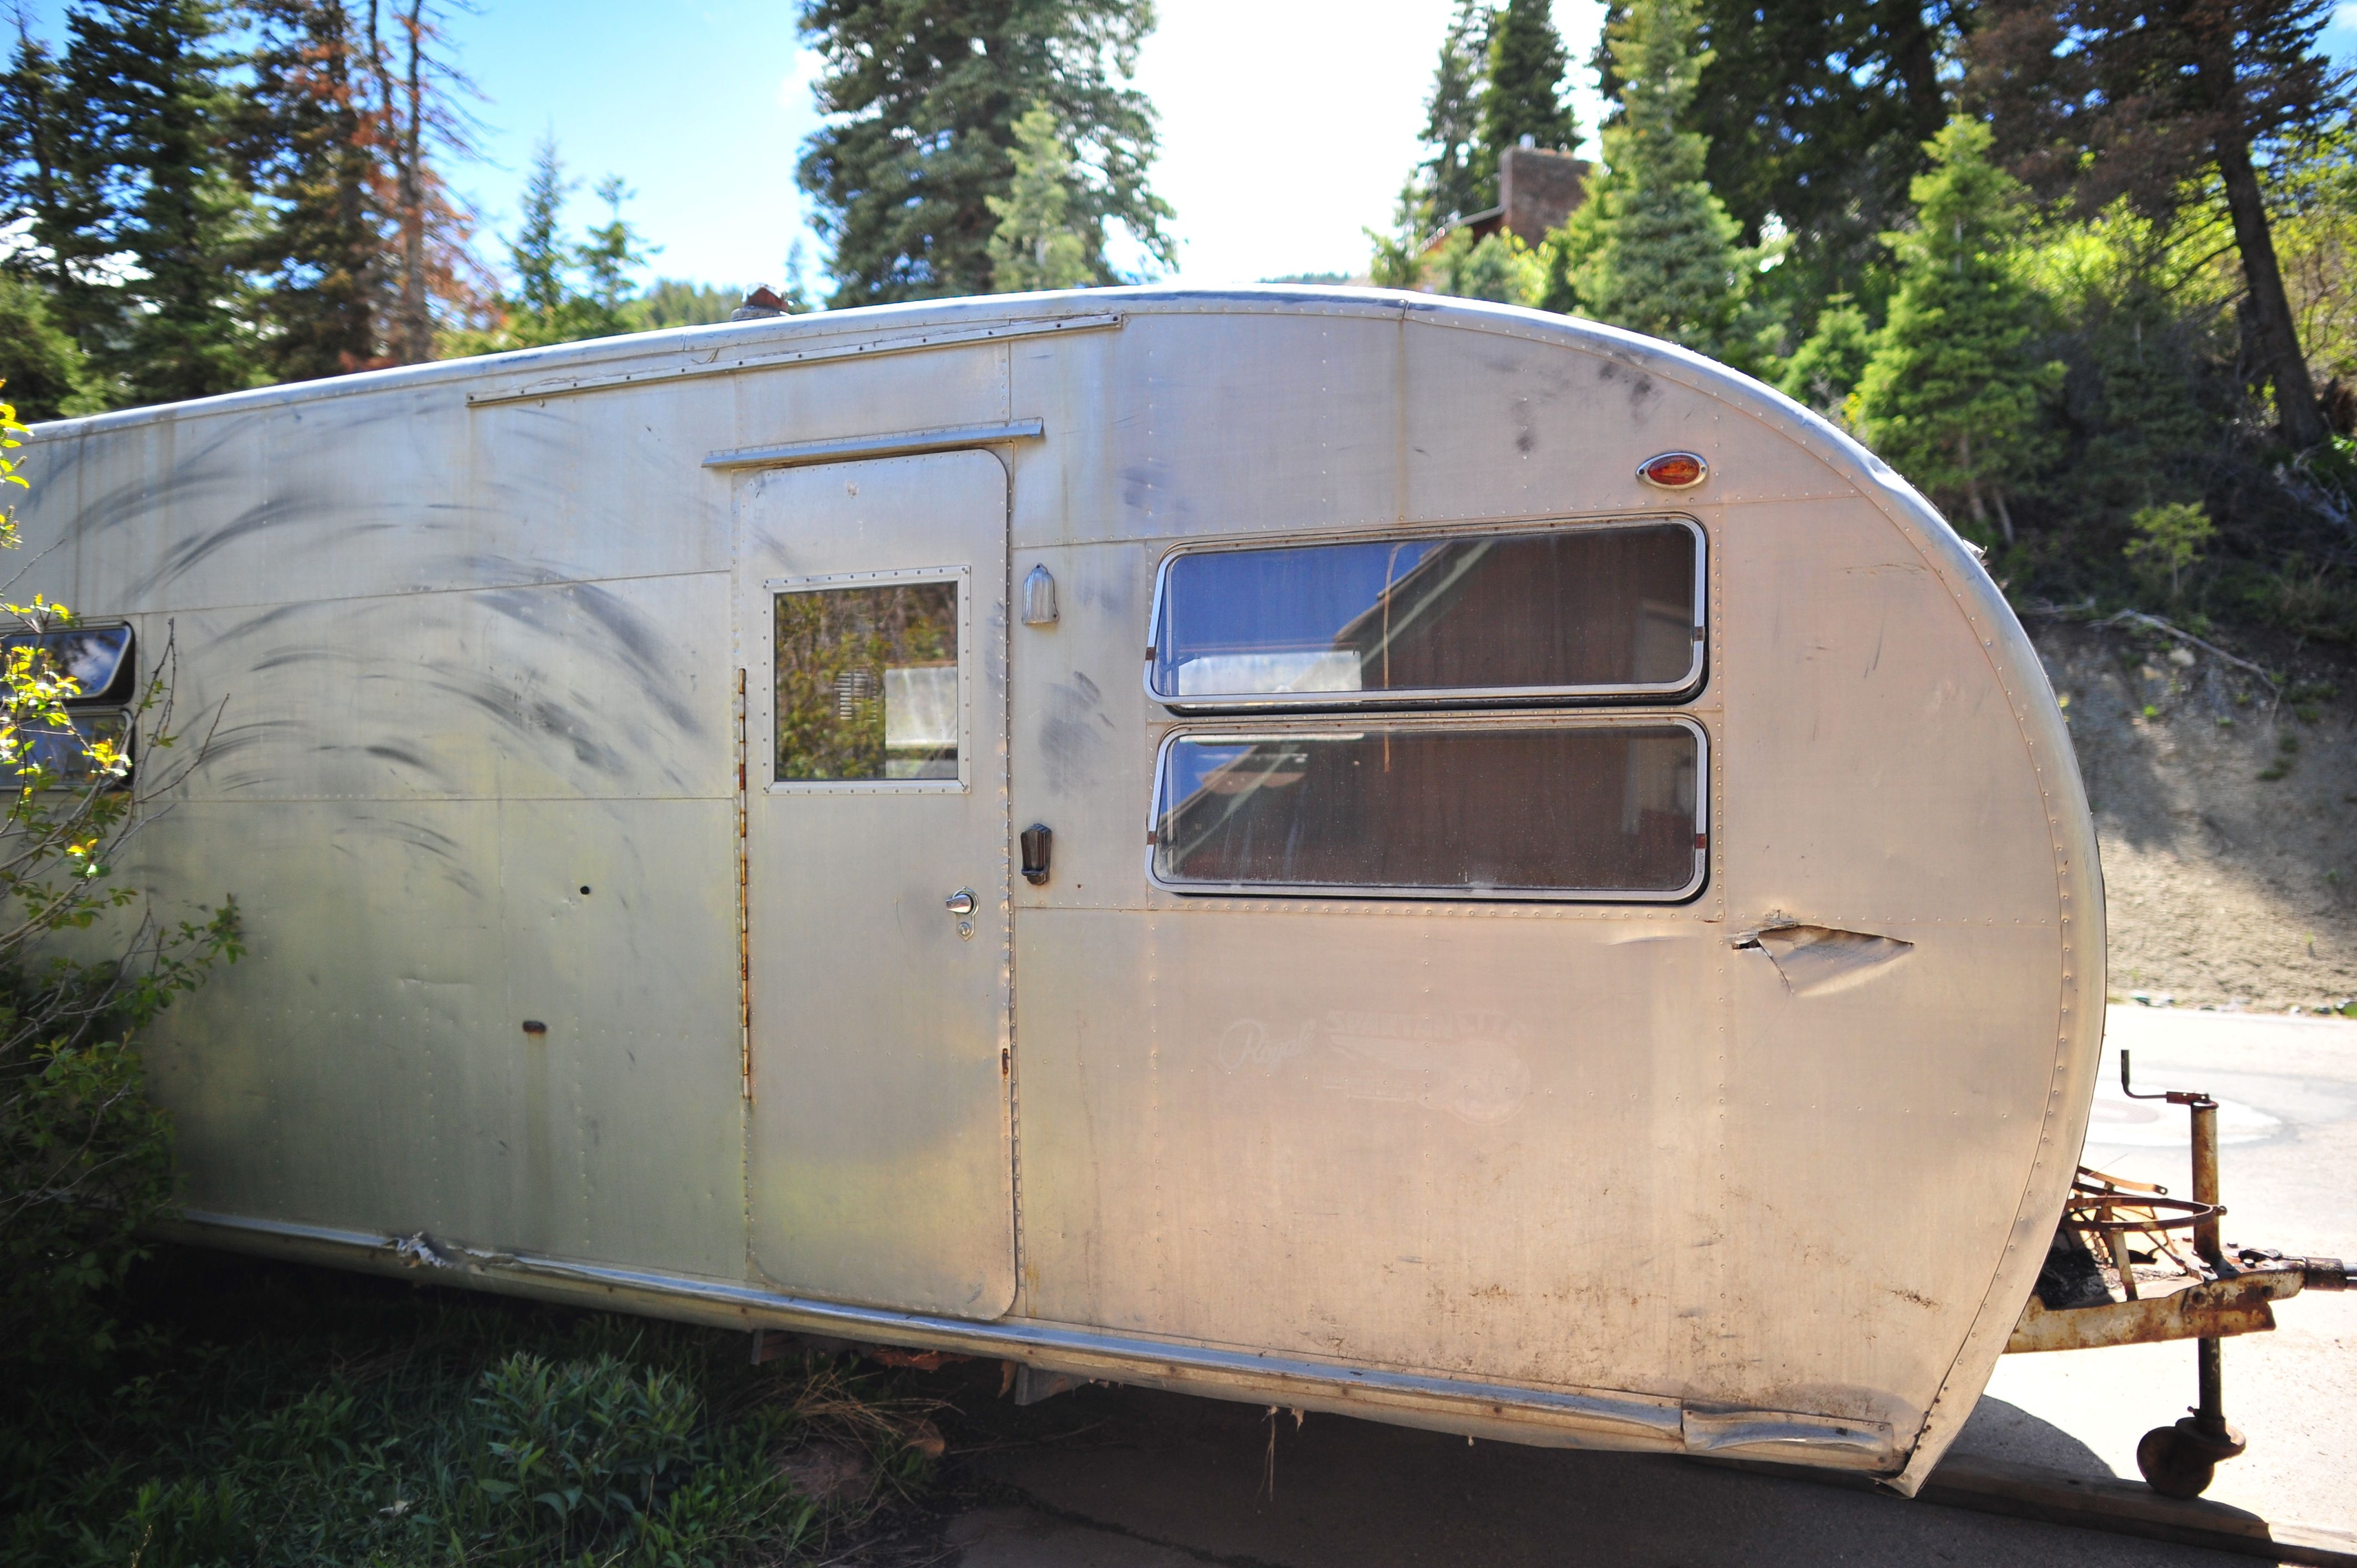 1951 spartan royal spartanette royal sport house trailer for sale 2750 00 this trailer will